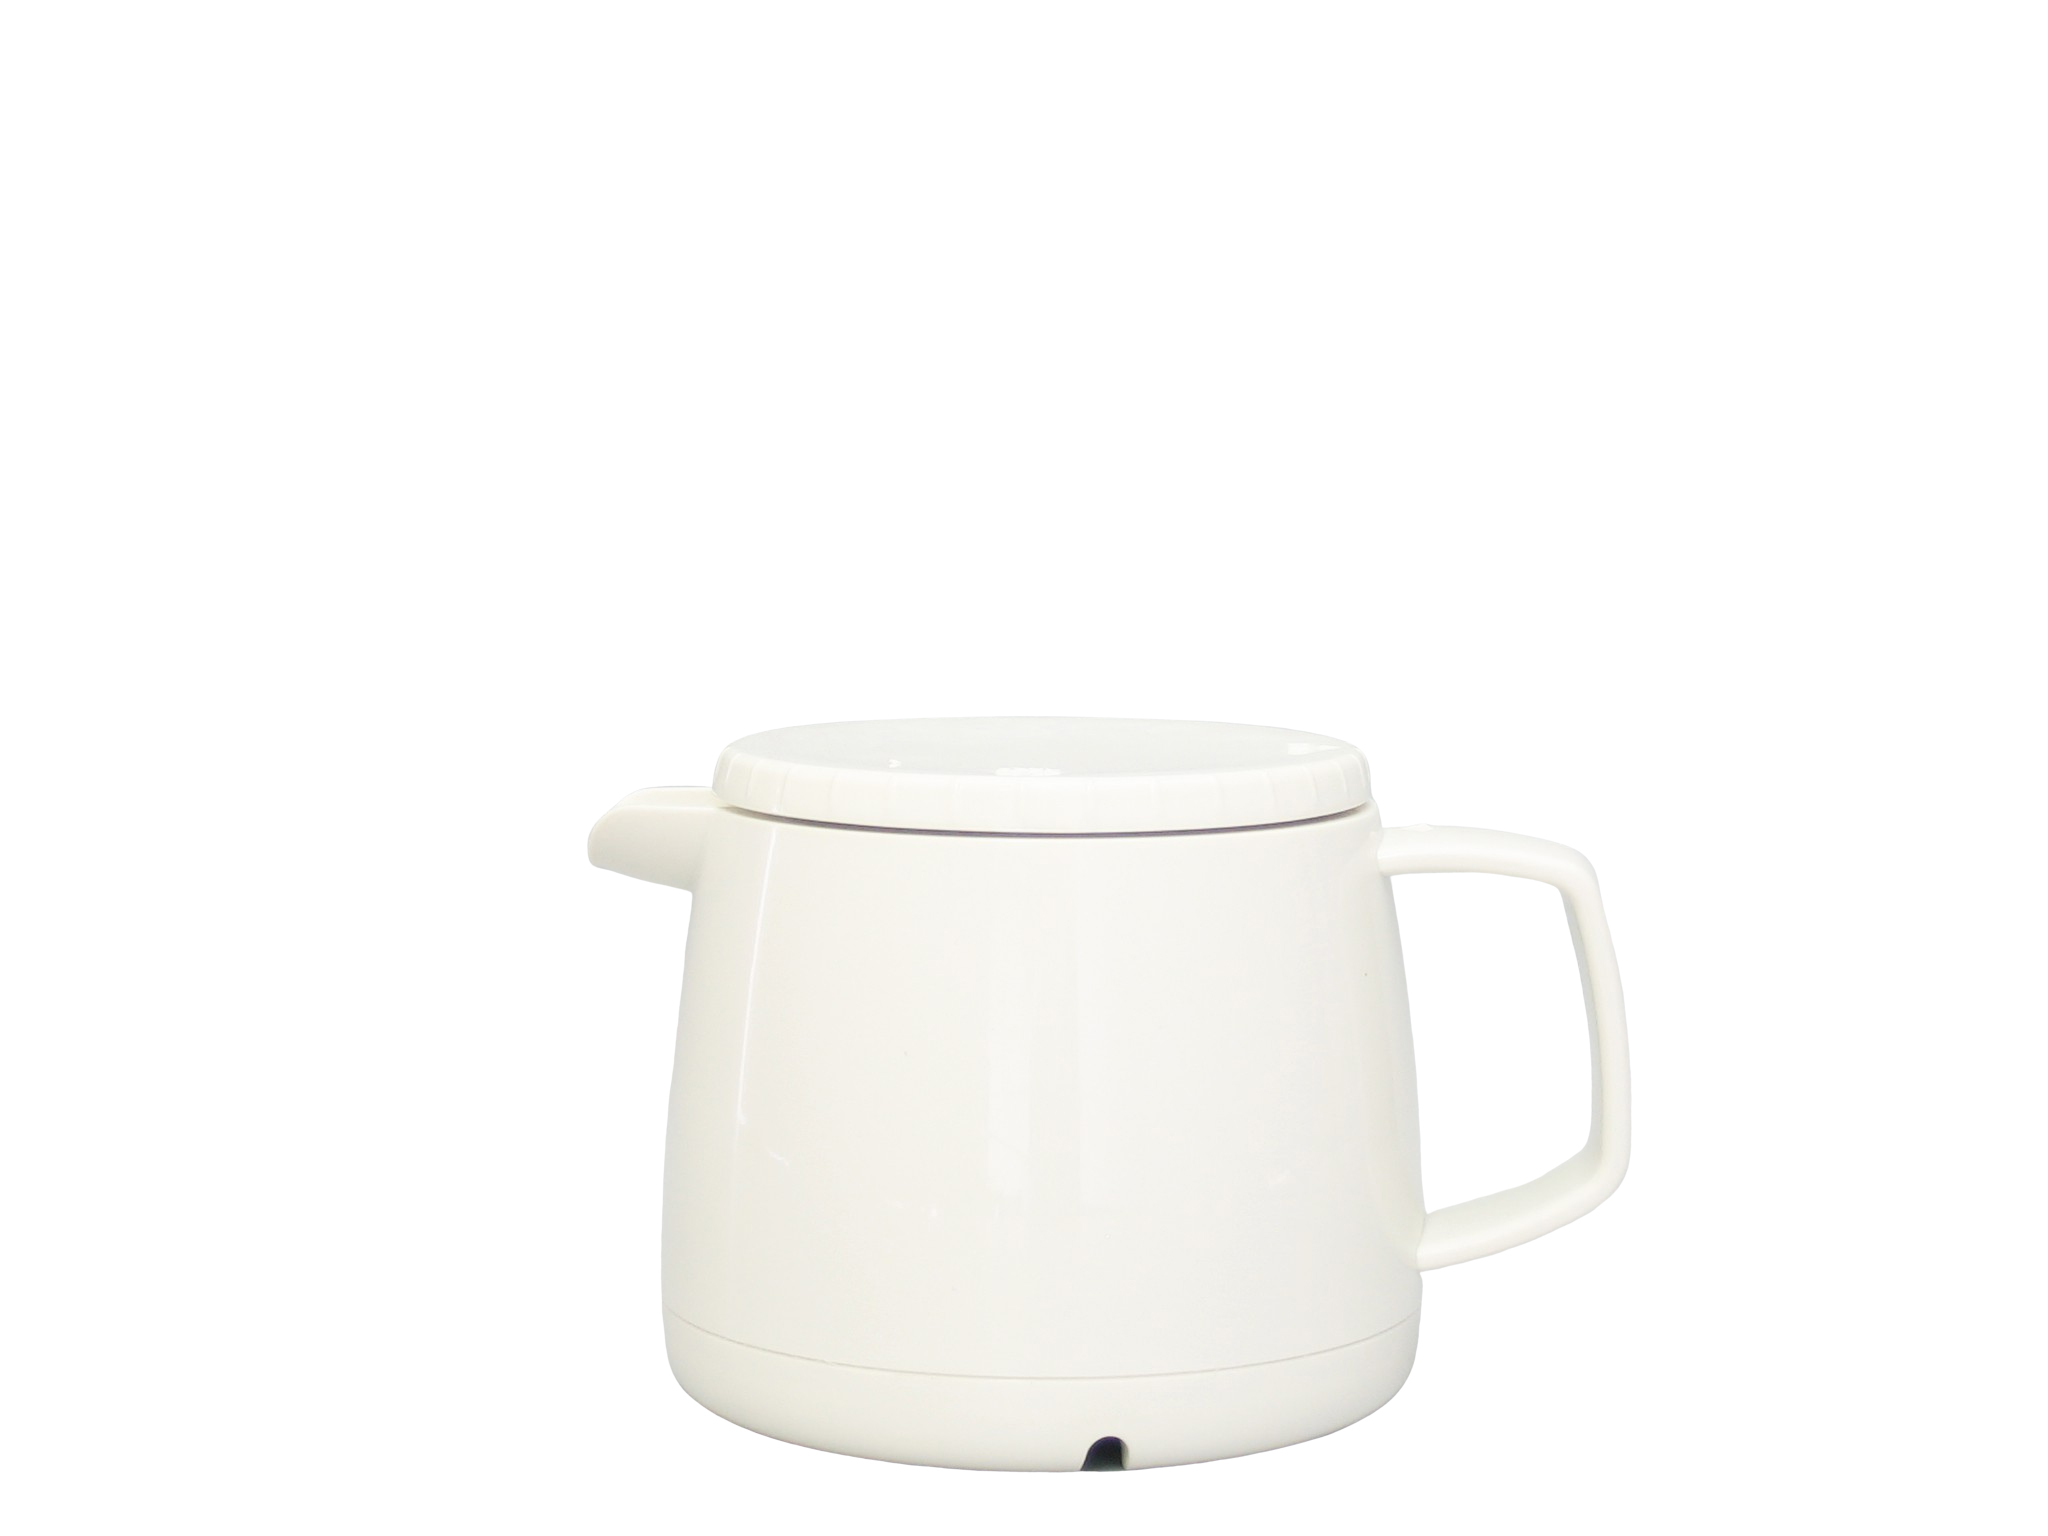 JAZZ030-001 - Insulated carafe low height stackable white 0.30 L - Isobel